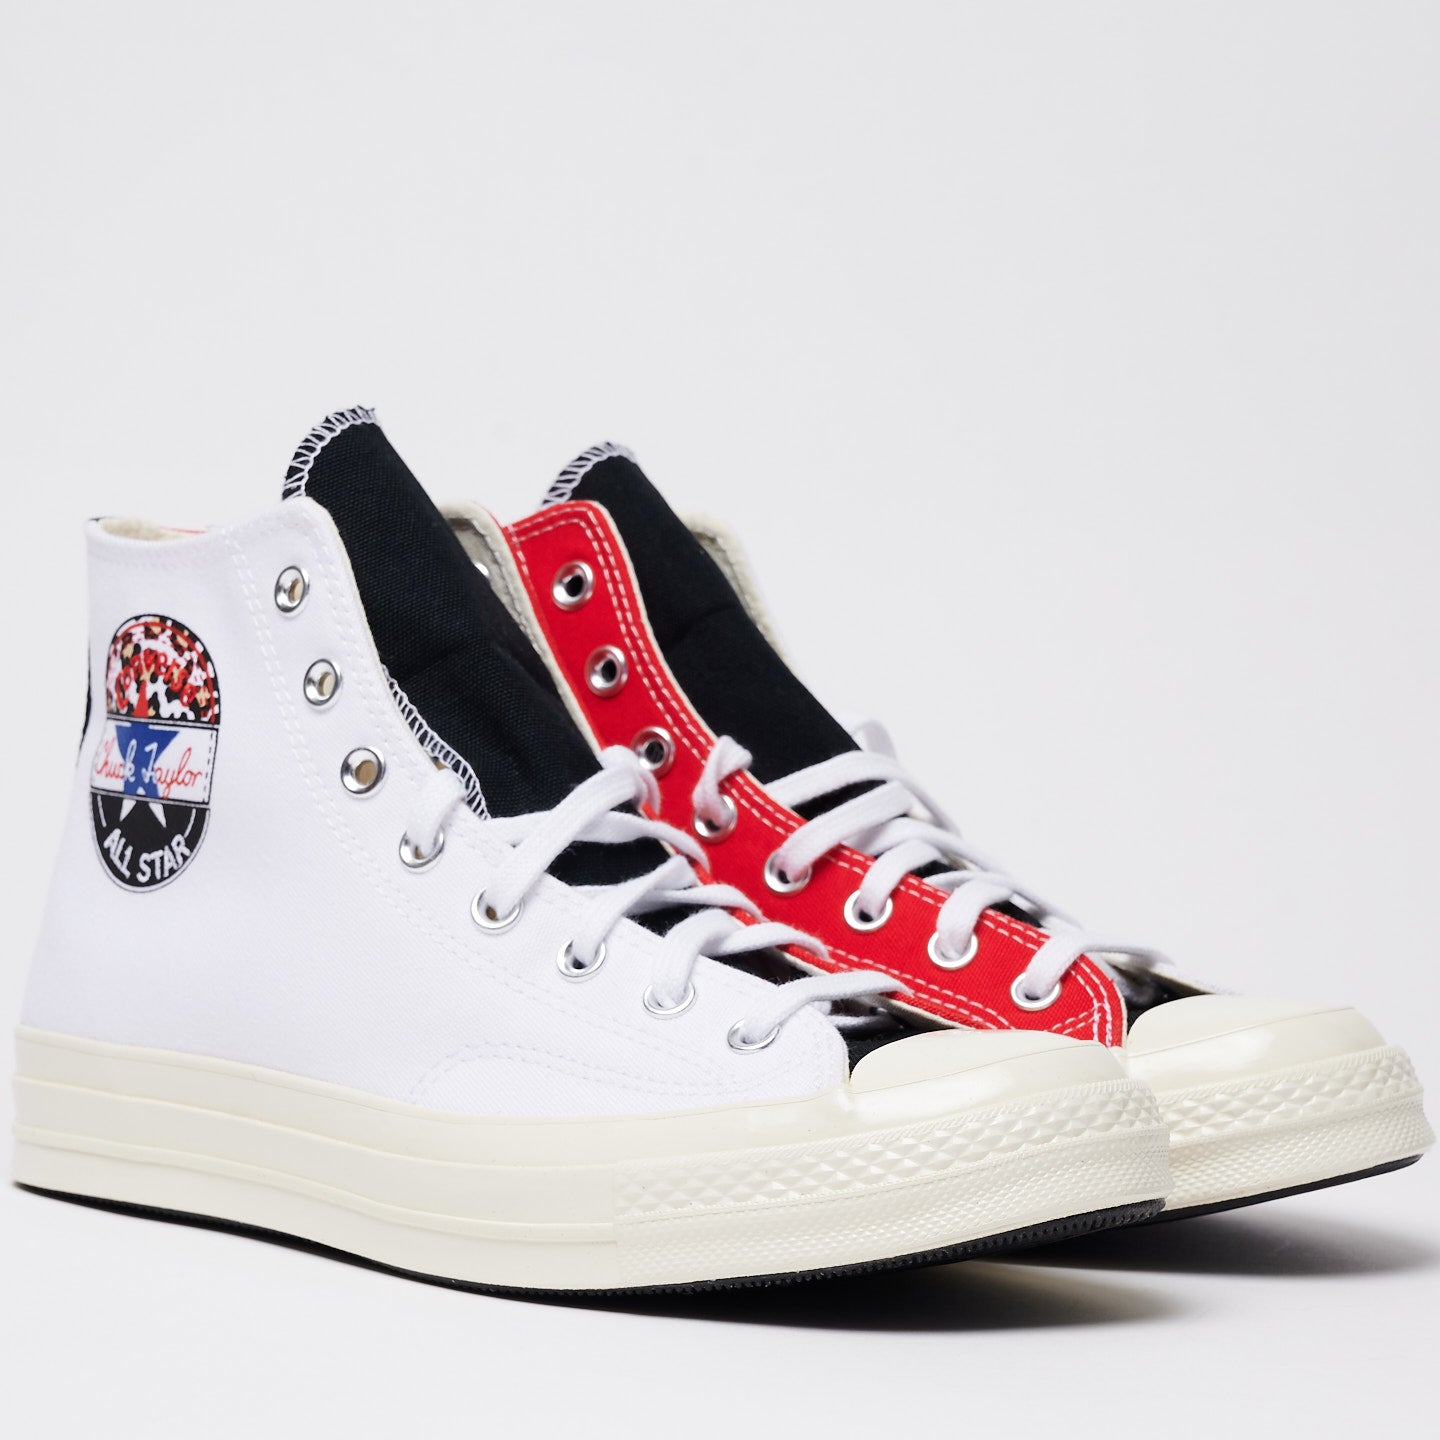 CONVERSE M'S FOOTWEAR LOGO PLAY CHUCK 70 HIGH TOP - WHITE/UNIVERSITY RED/RUSH BLUE